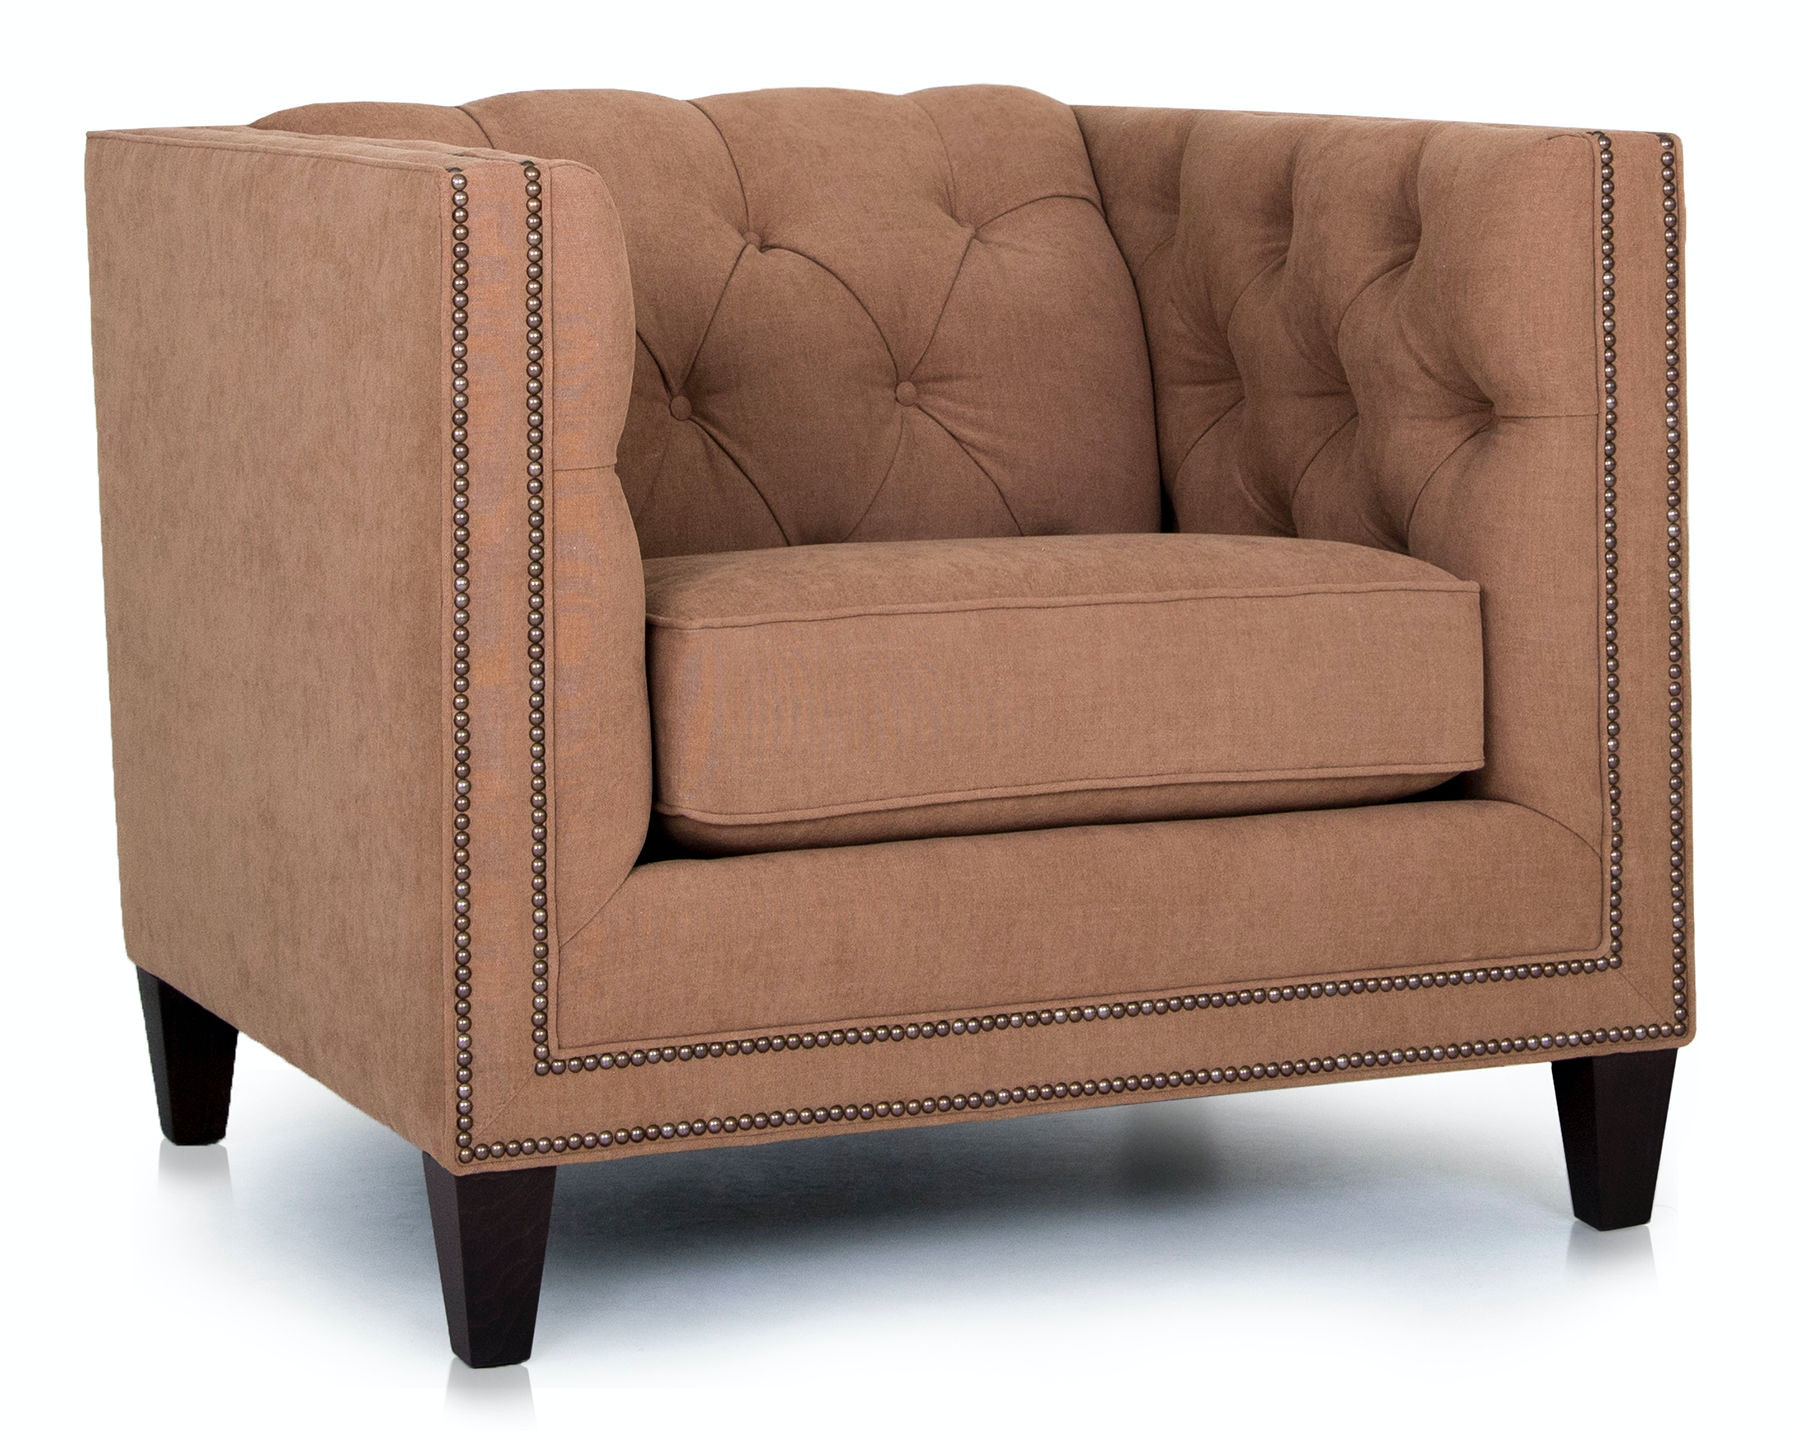 Smith Brothers 243 Chair SB243 30